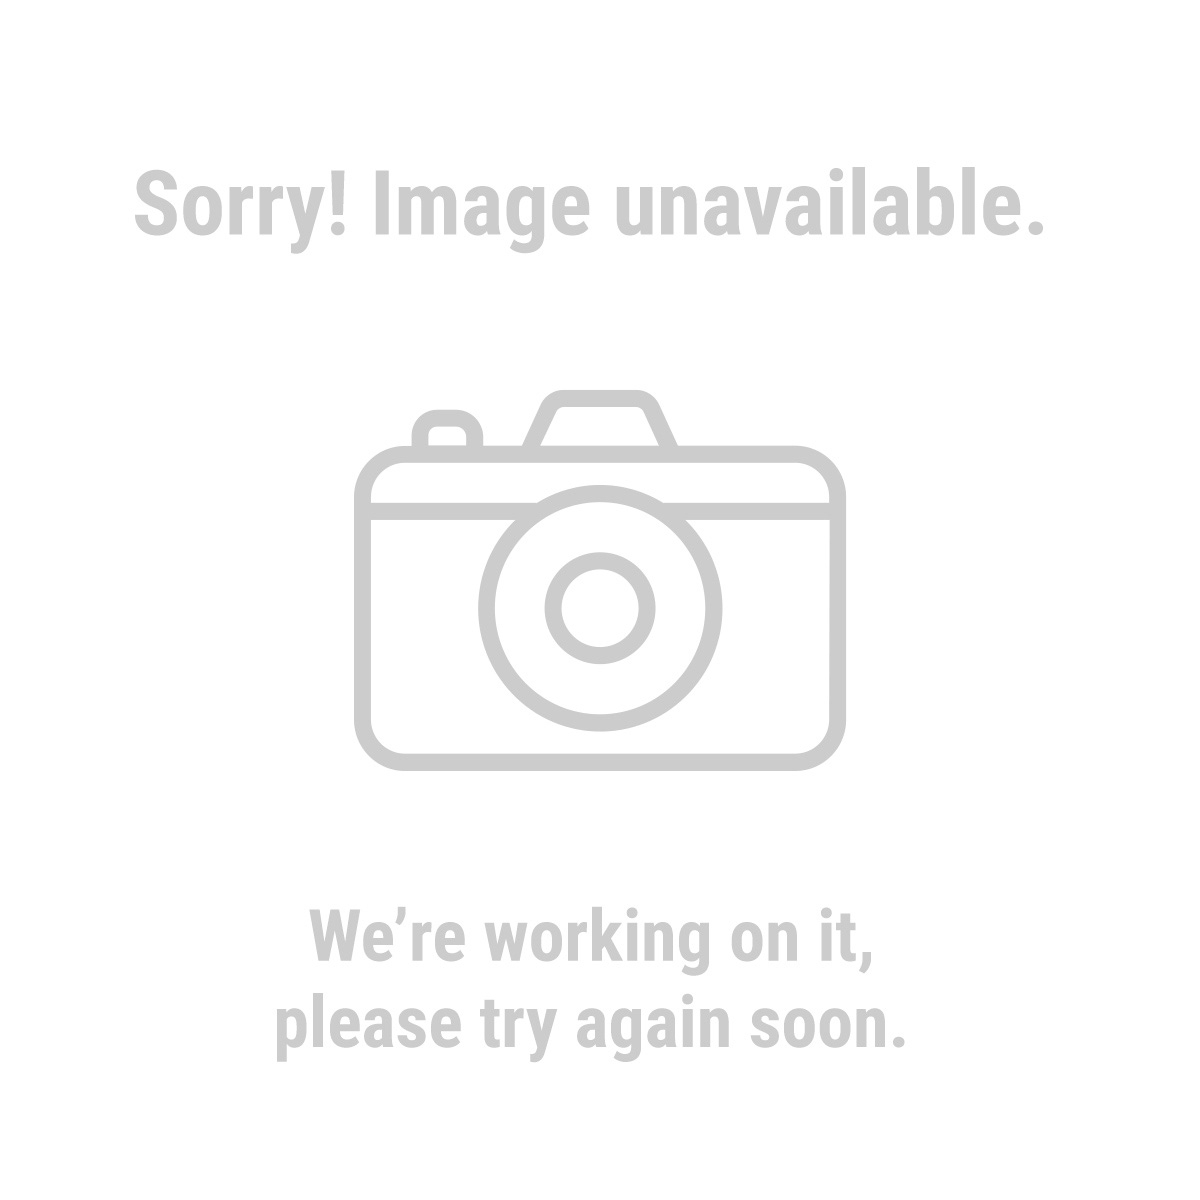 Gordon 92825 Aluminum Suction Cup Lifter